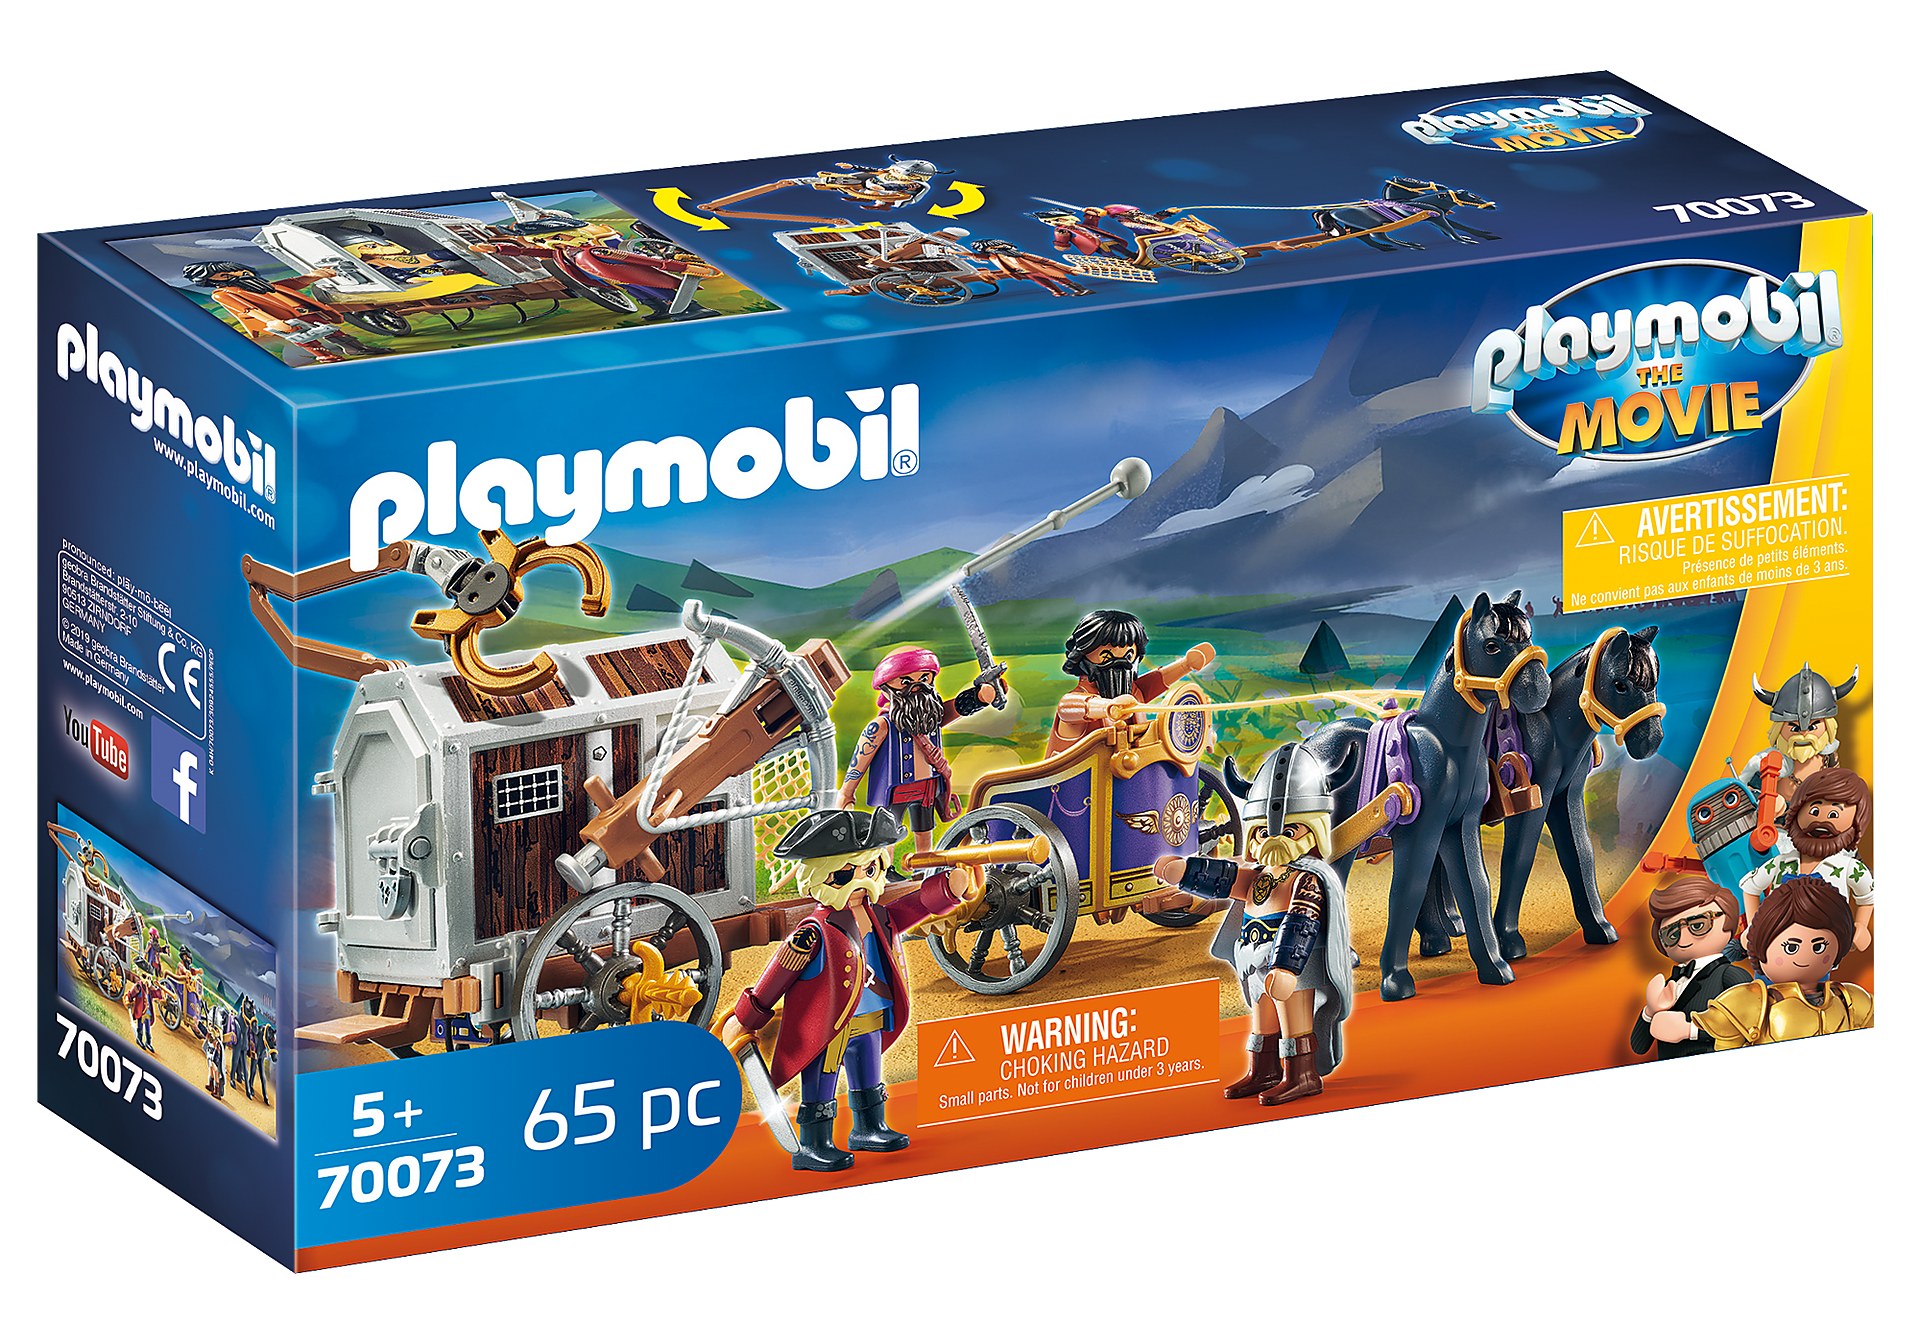 http://media.playmobil.com/i/playmobil/70073_product_box_front/PLAYMOBIL: THE MOVIE Charlie com Carro Prisão